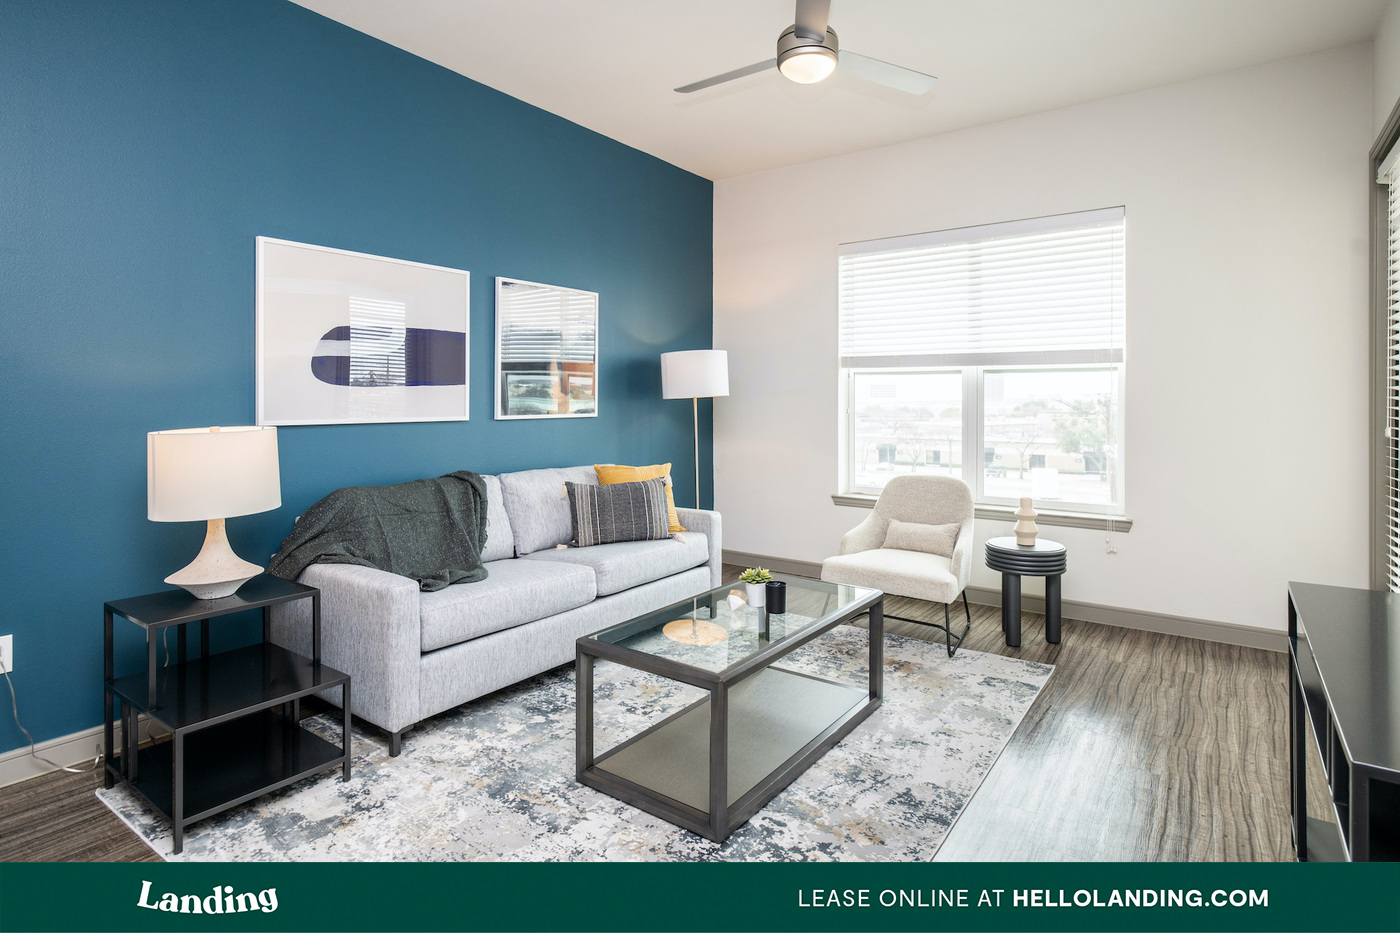 Landing Furnished Apartment The George & The Leonard photo